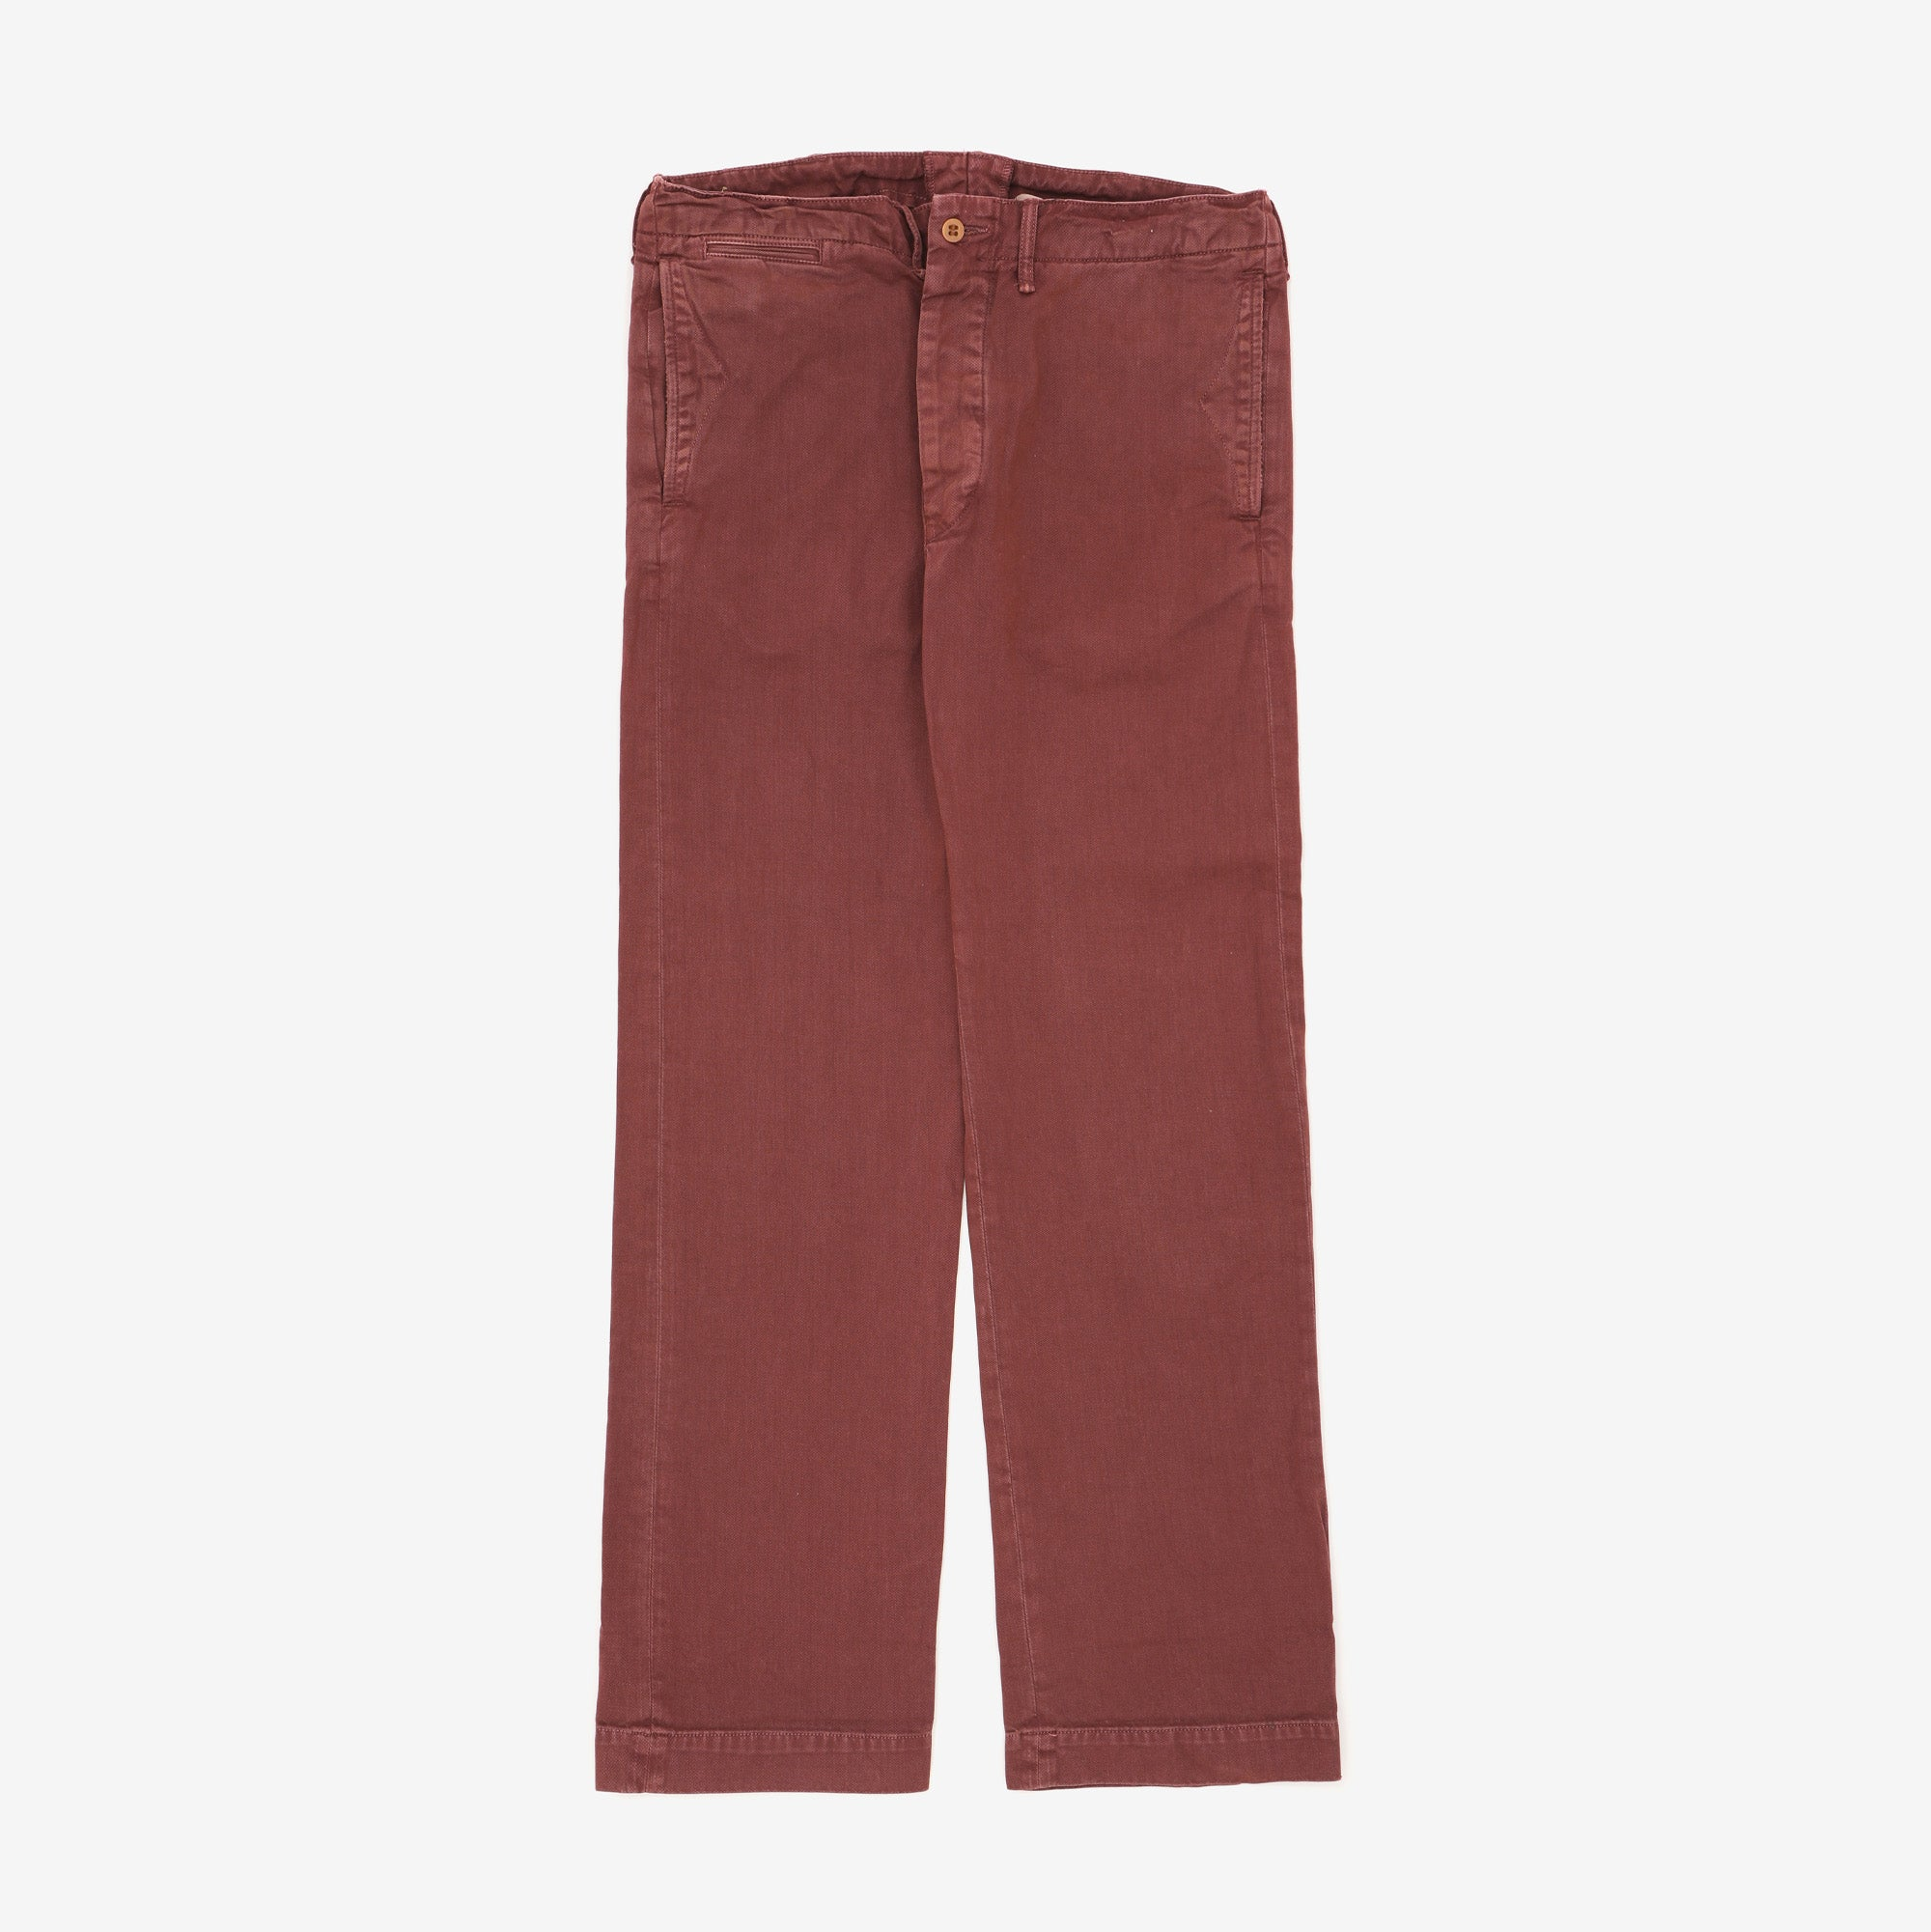 Cotton Officers Chino